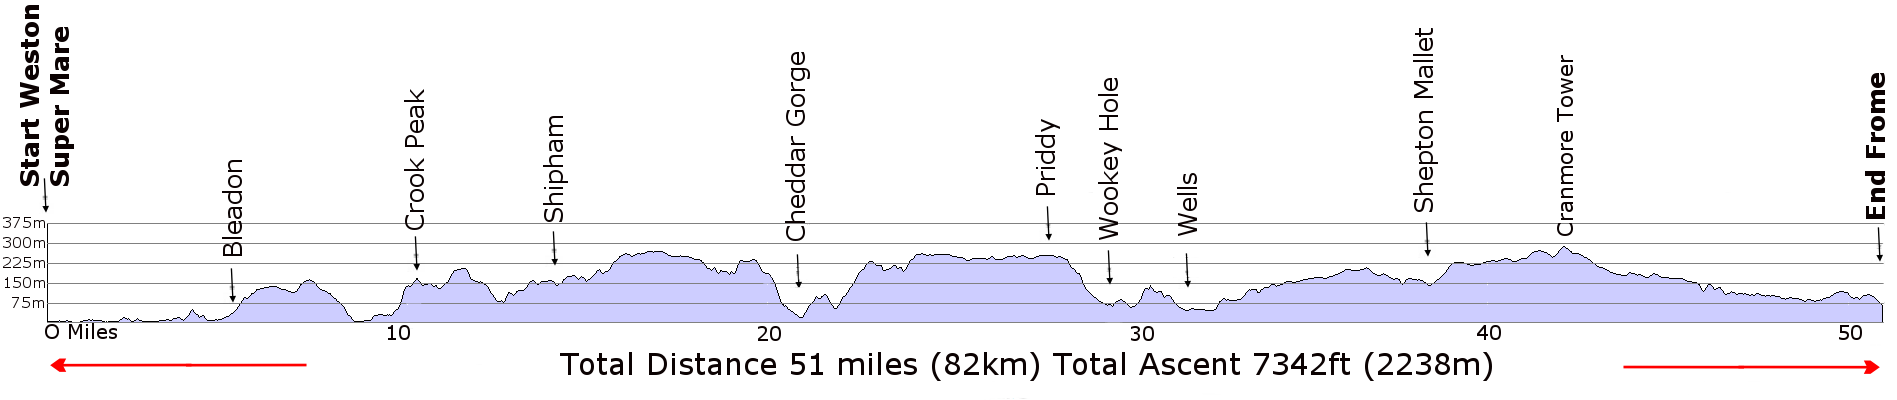 Mendip Way Route Profile